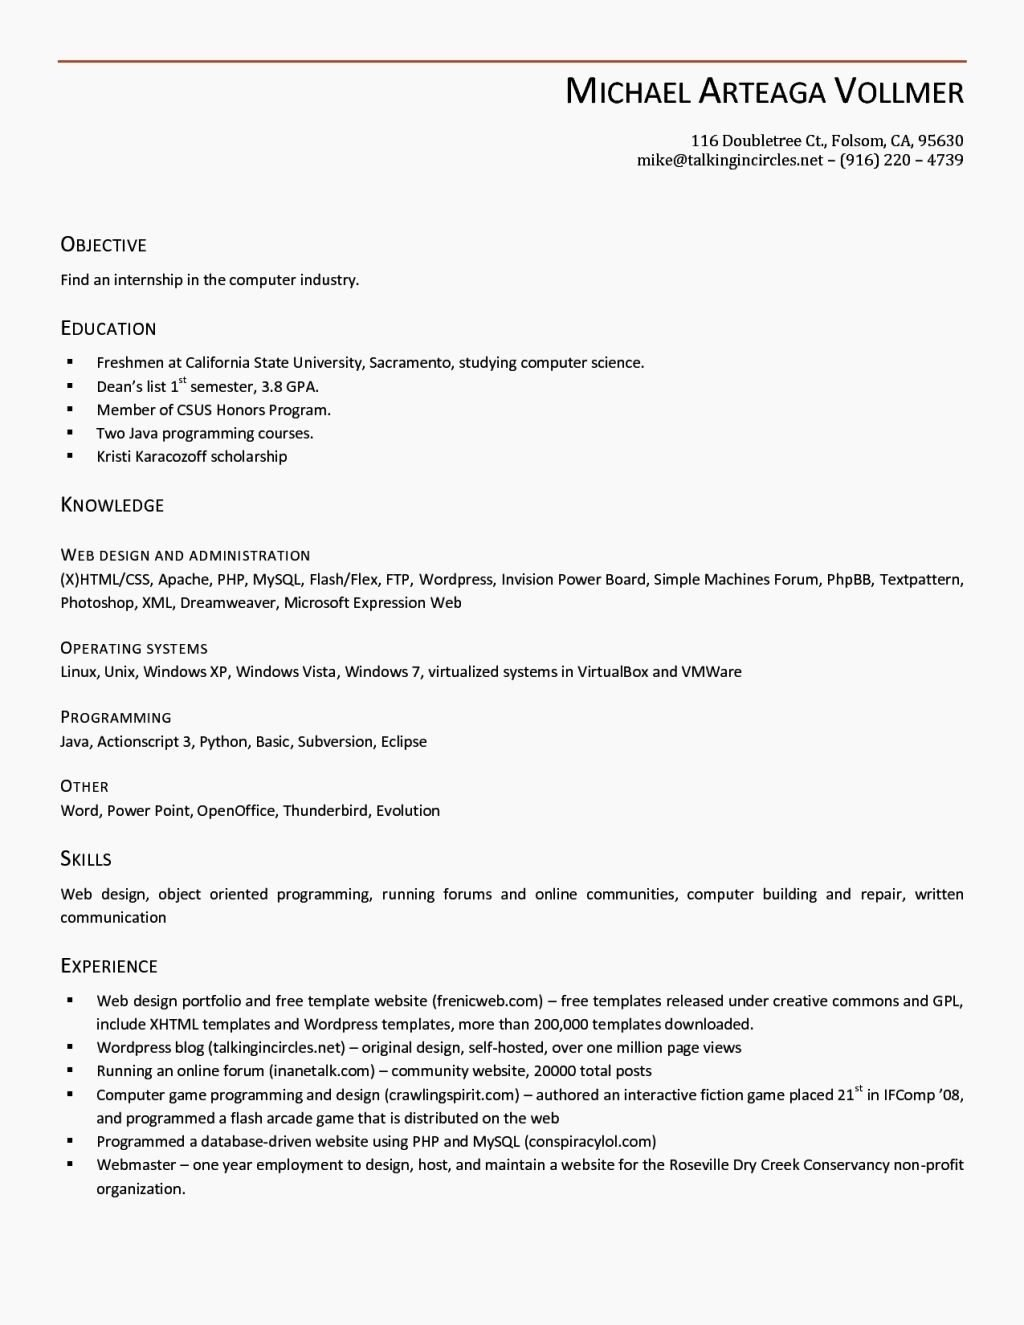 Open Fice Resume Template Beepmunk